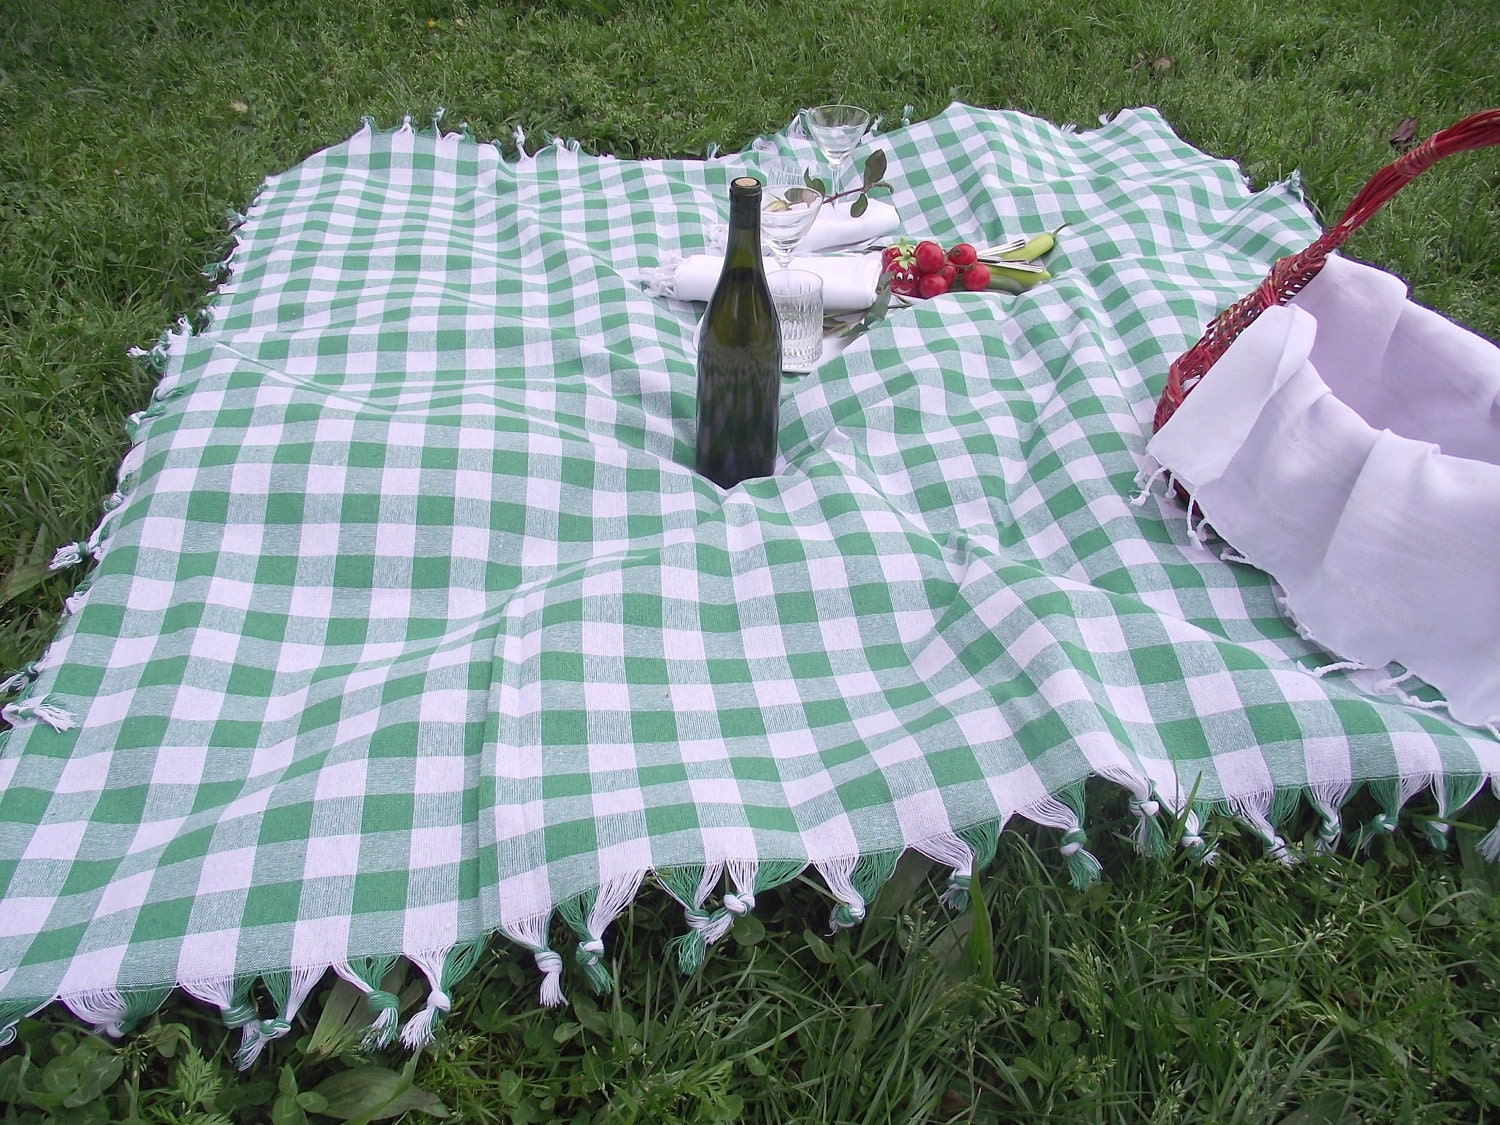 Best Quality Hand Woven Turkish Cotton Picnic Cover or Garden,Kitchen Tablecloth-Apple Green and White Checked